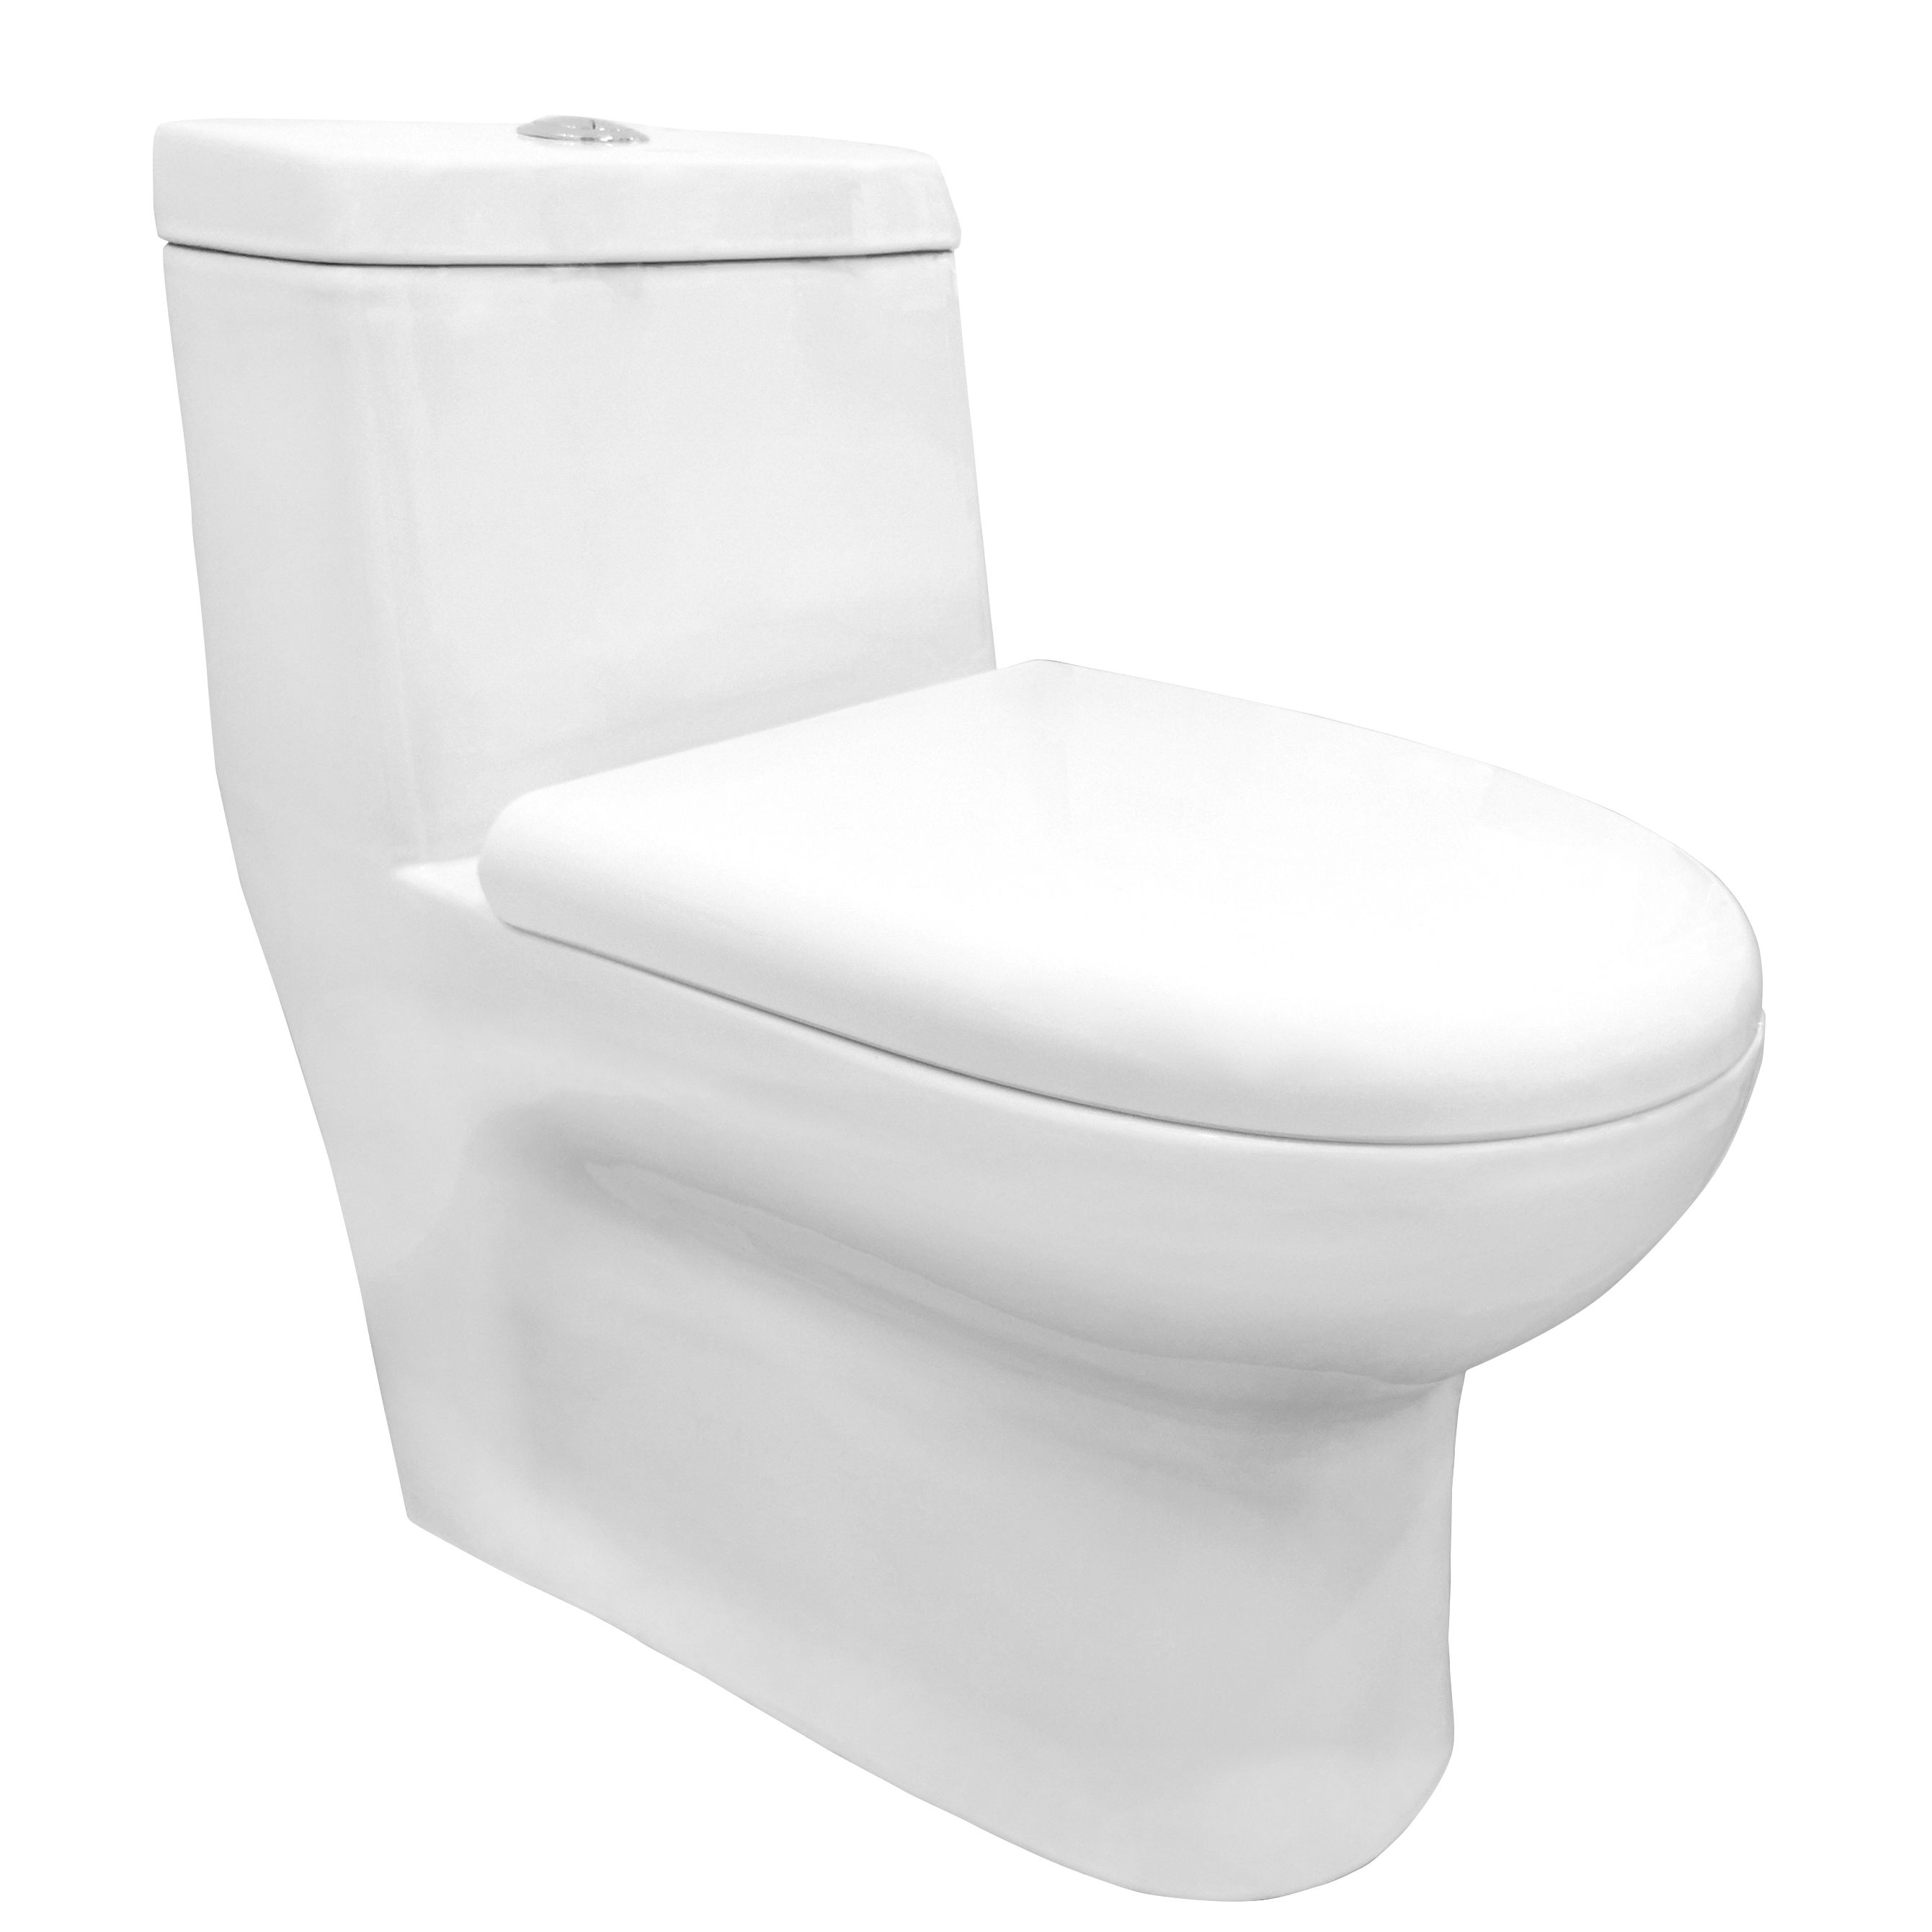 Goodone Single Turbo Flush Skirted Trapway Comfort Toilet Syphon Washdown WC One Piece Commode Price